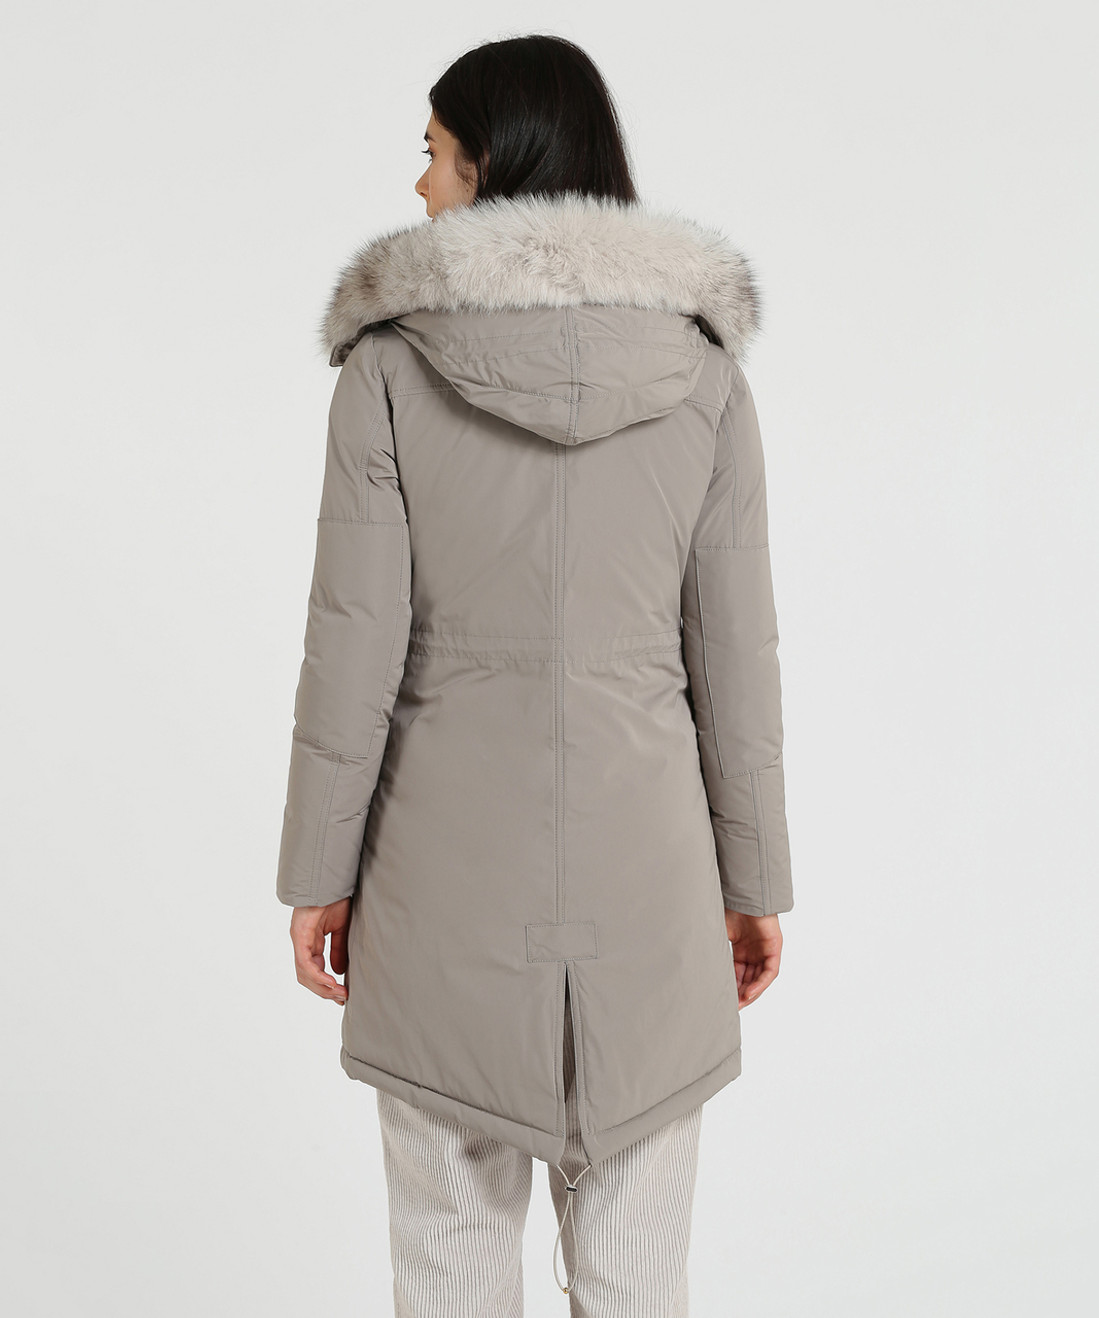 Women's Military Down Parka Fox - John Rich & Bros.